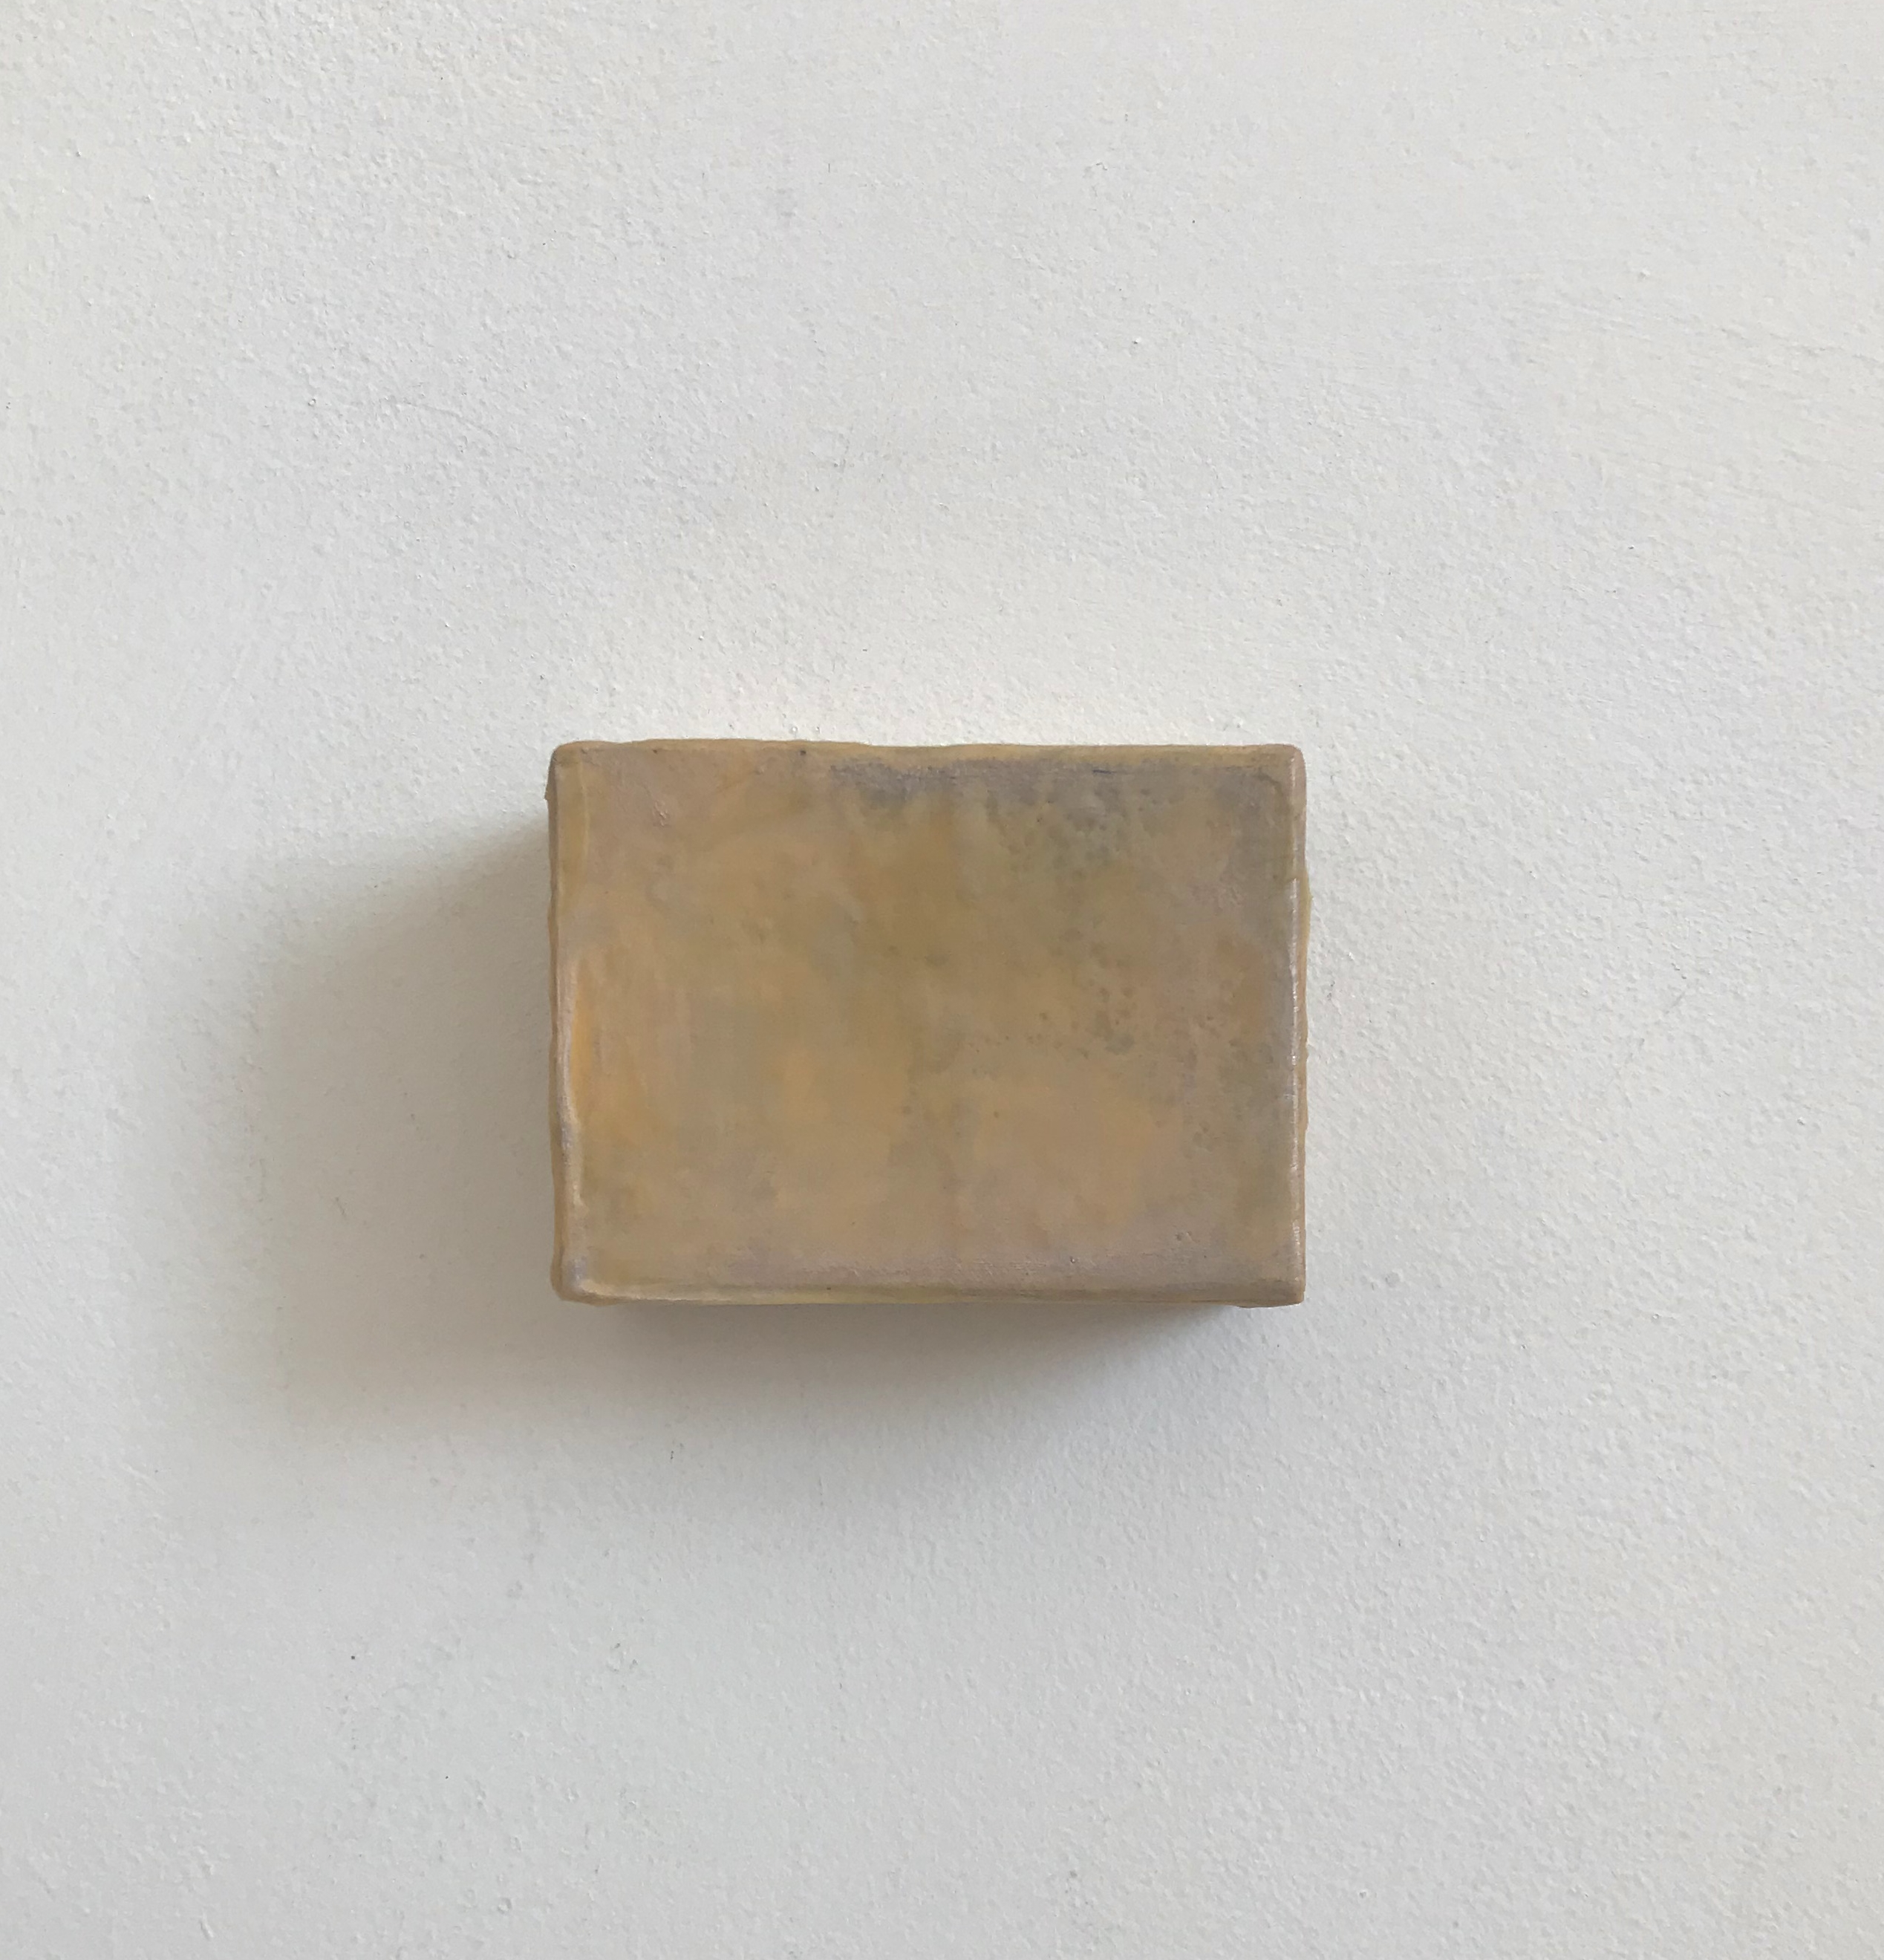 Glace | Charlie Franklin, 2018 | oil, acrylic, chalk paint, gesso, cardboard | 7cm x 8.5cm x 4cm | image: courtesy of the artist